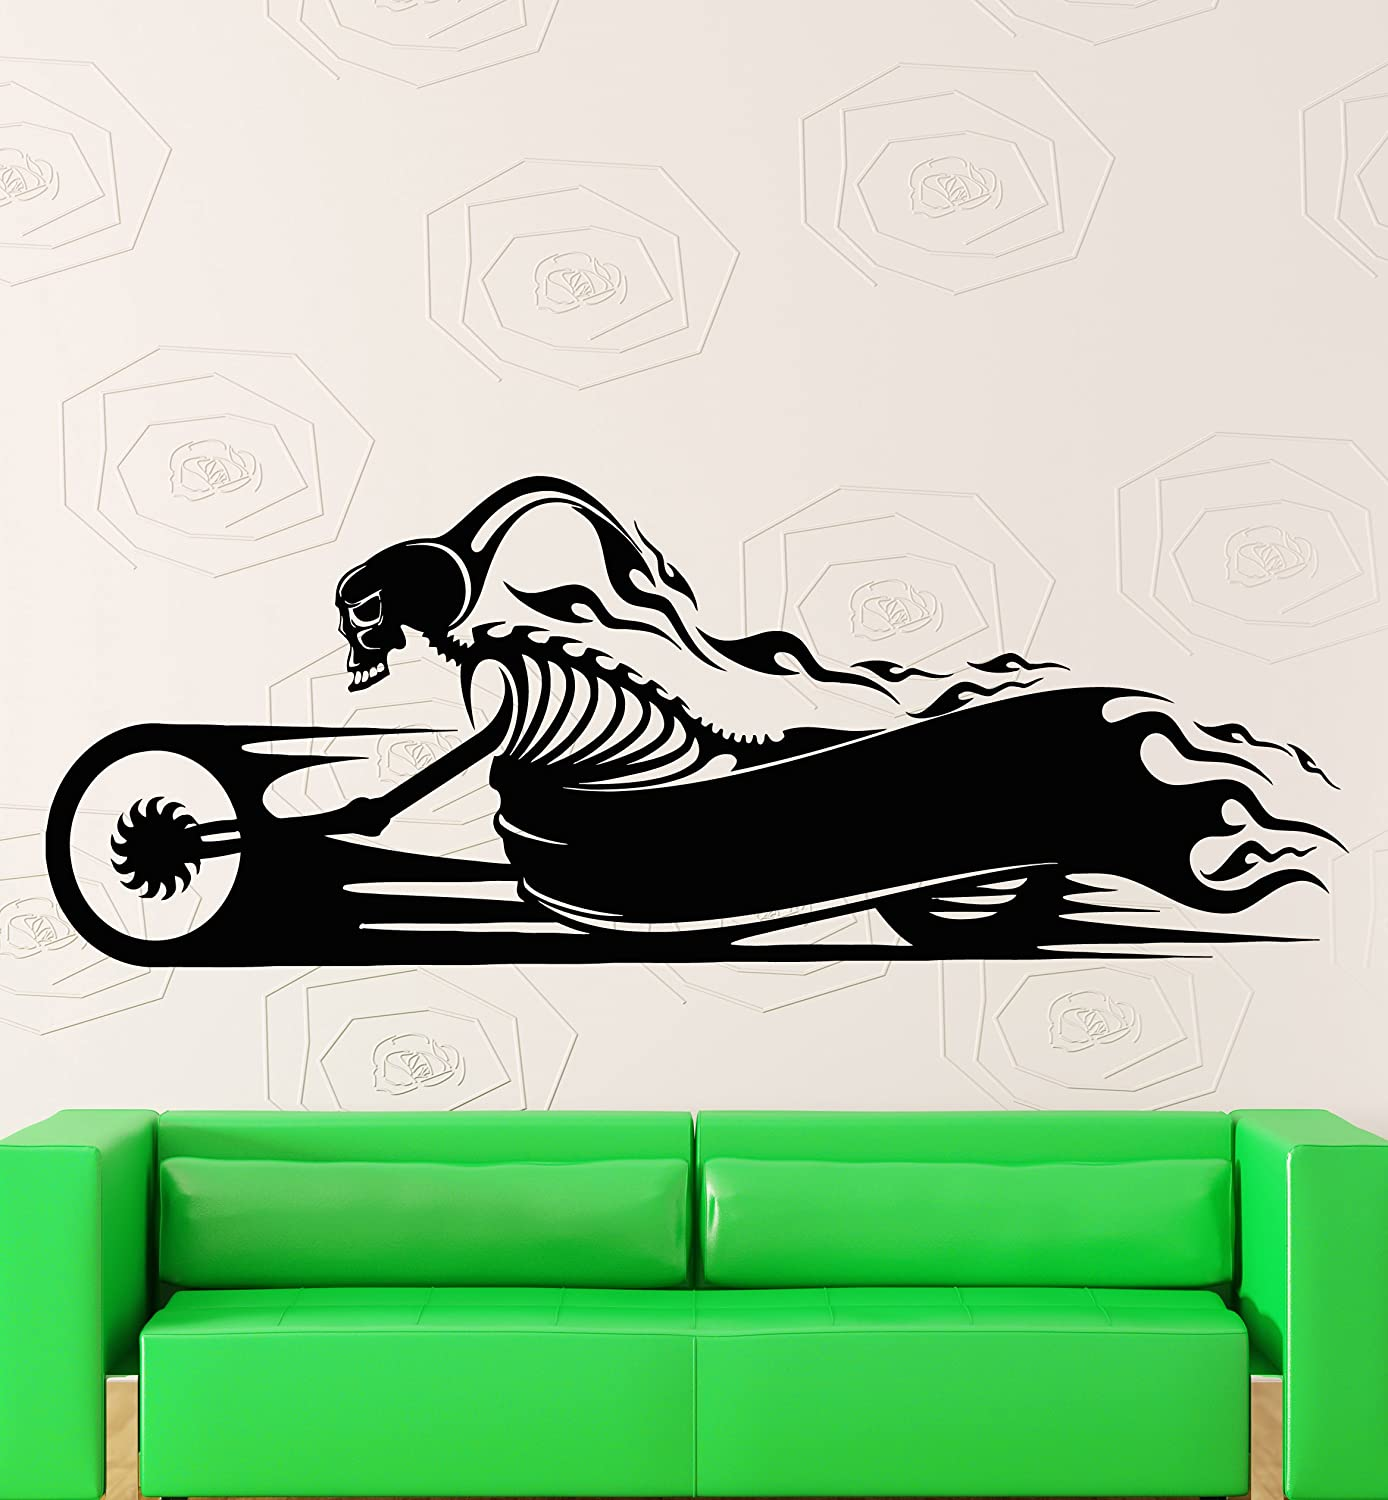 Amazon com wall stickers bike bikers skull ghost rider rocker cool decor z1716i home kitchen